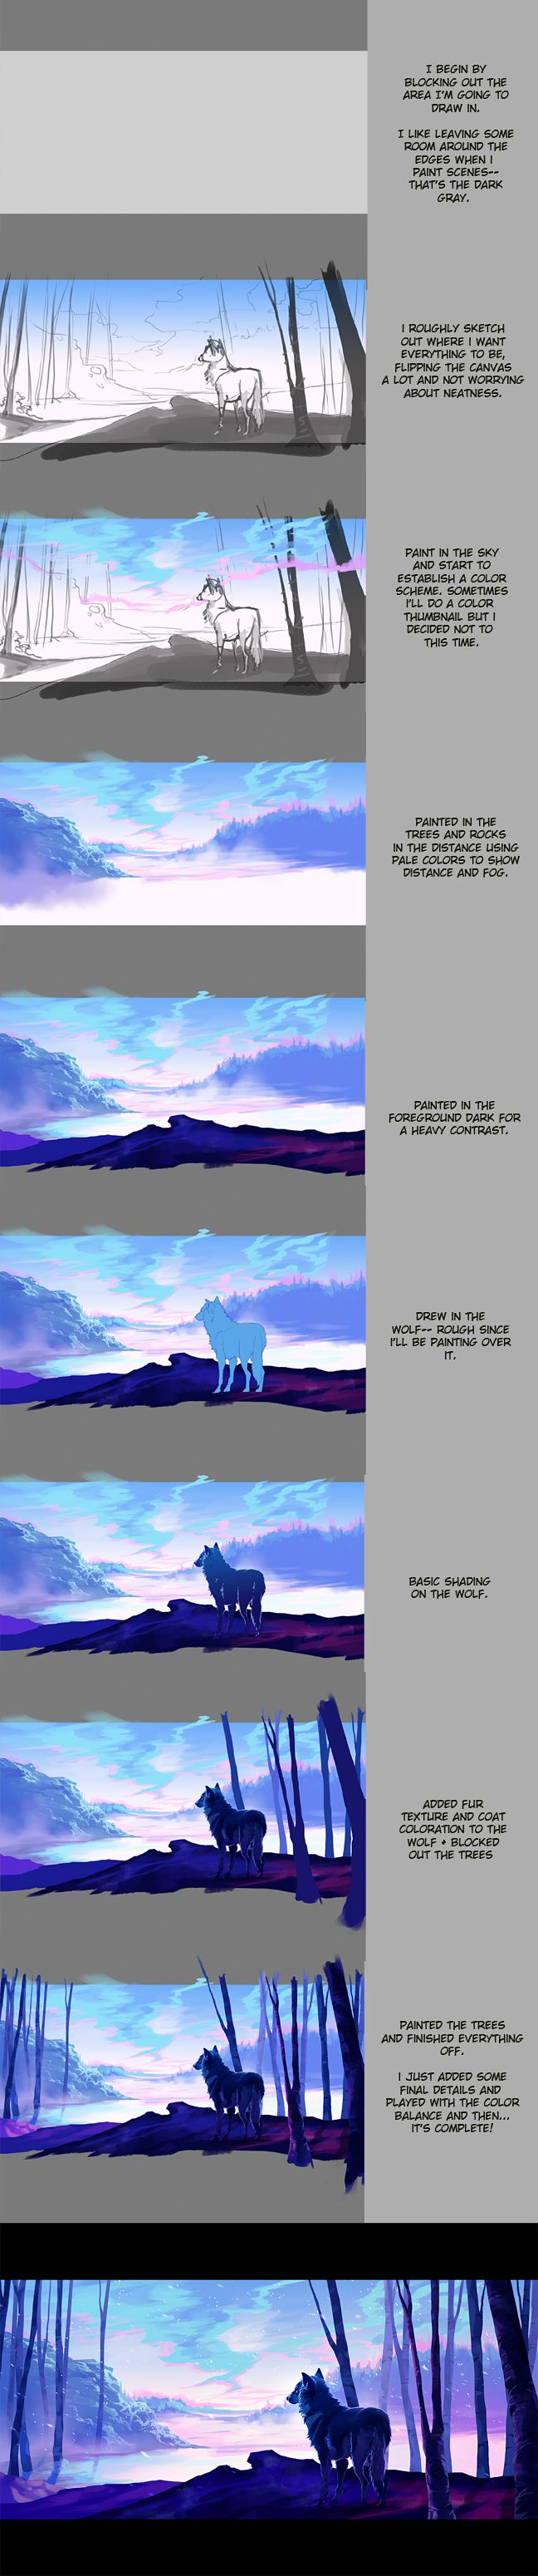 Skye Step-By-Step by *TamberElla on deviantART ✤    CHARACTER DESIGN REFERENCES   キャラクターデザイン   çizgi film